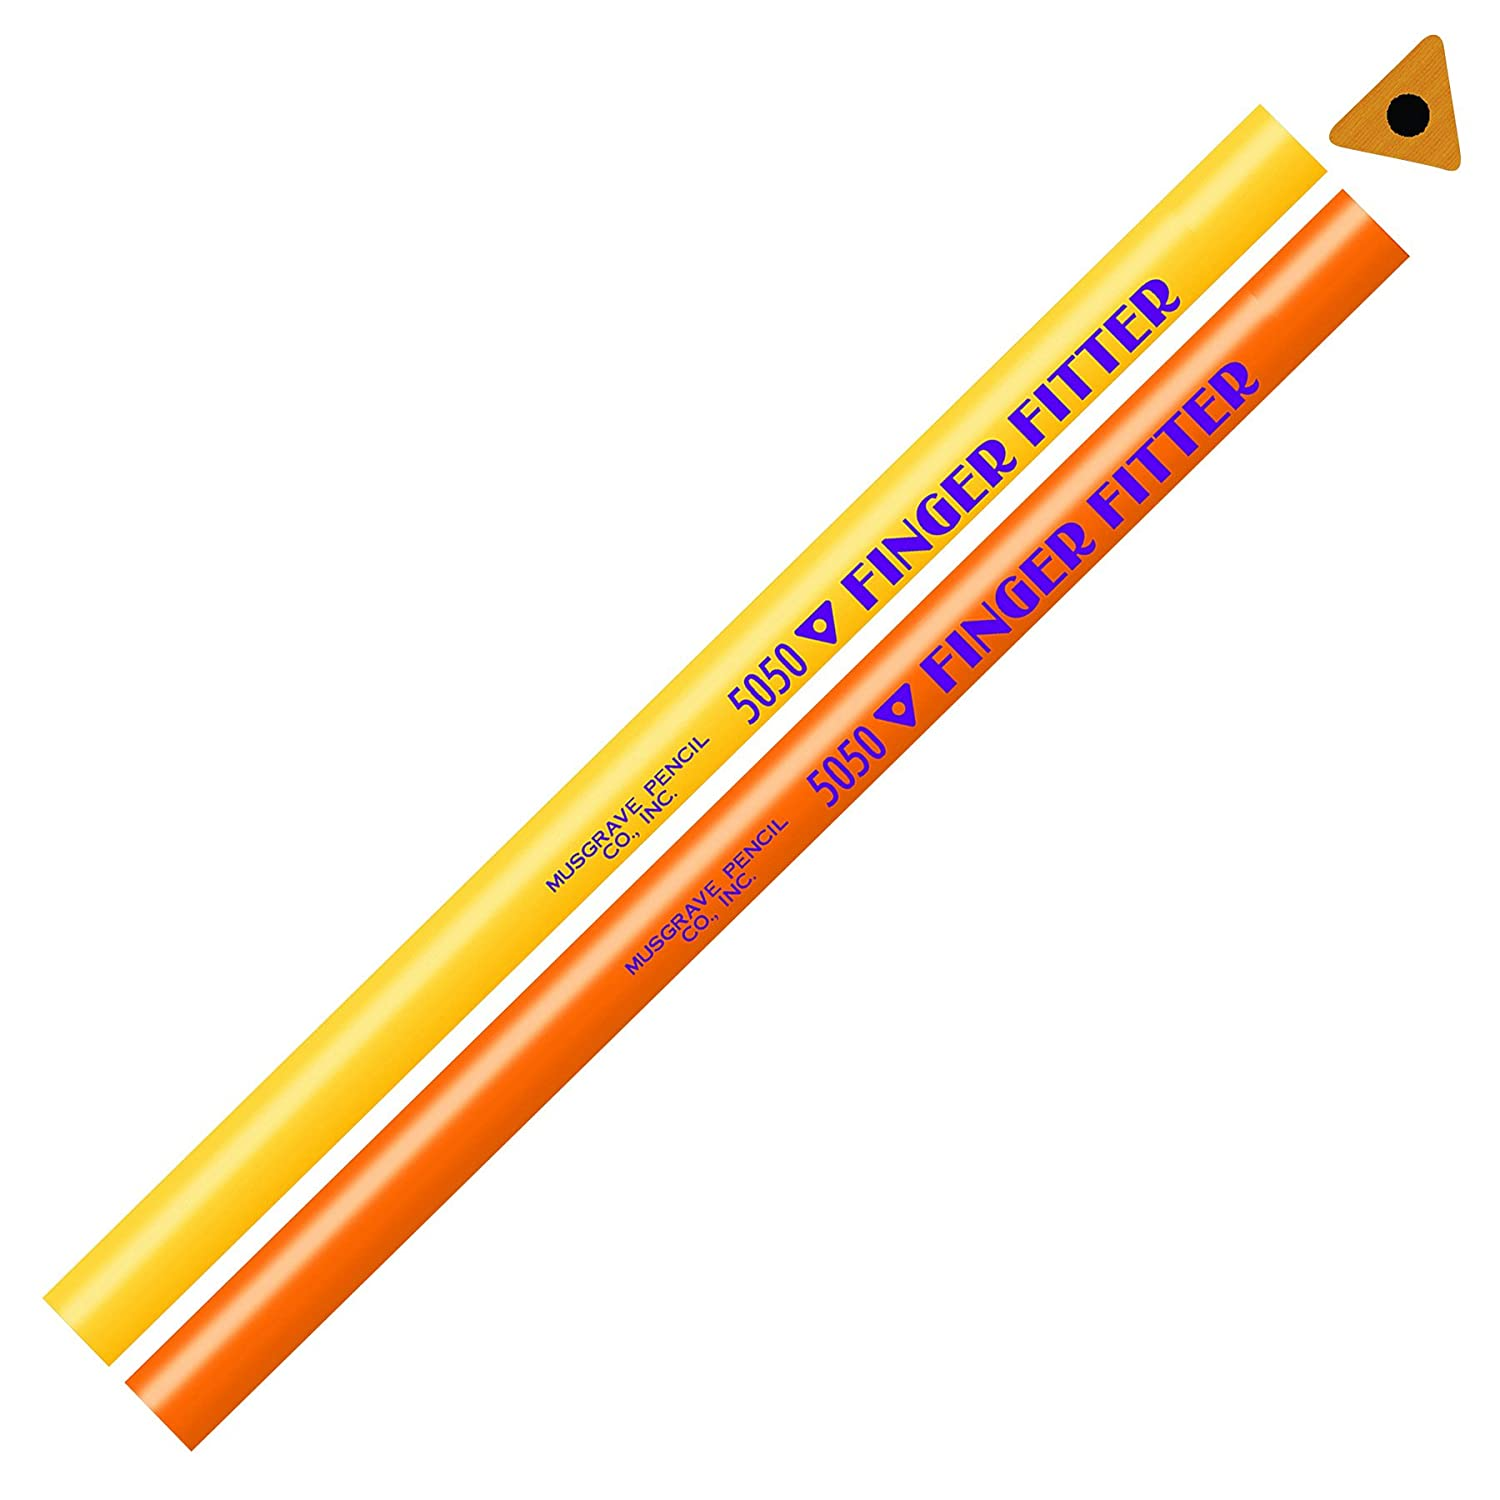 Musgrave Pencil Co MUS5050 Finger Fitter No Eraser Art and Craft Pencil MUSGRAVE PENCIL CO INC